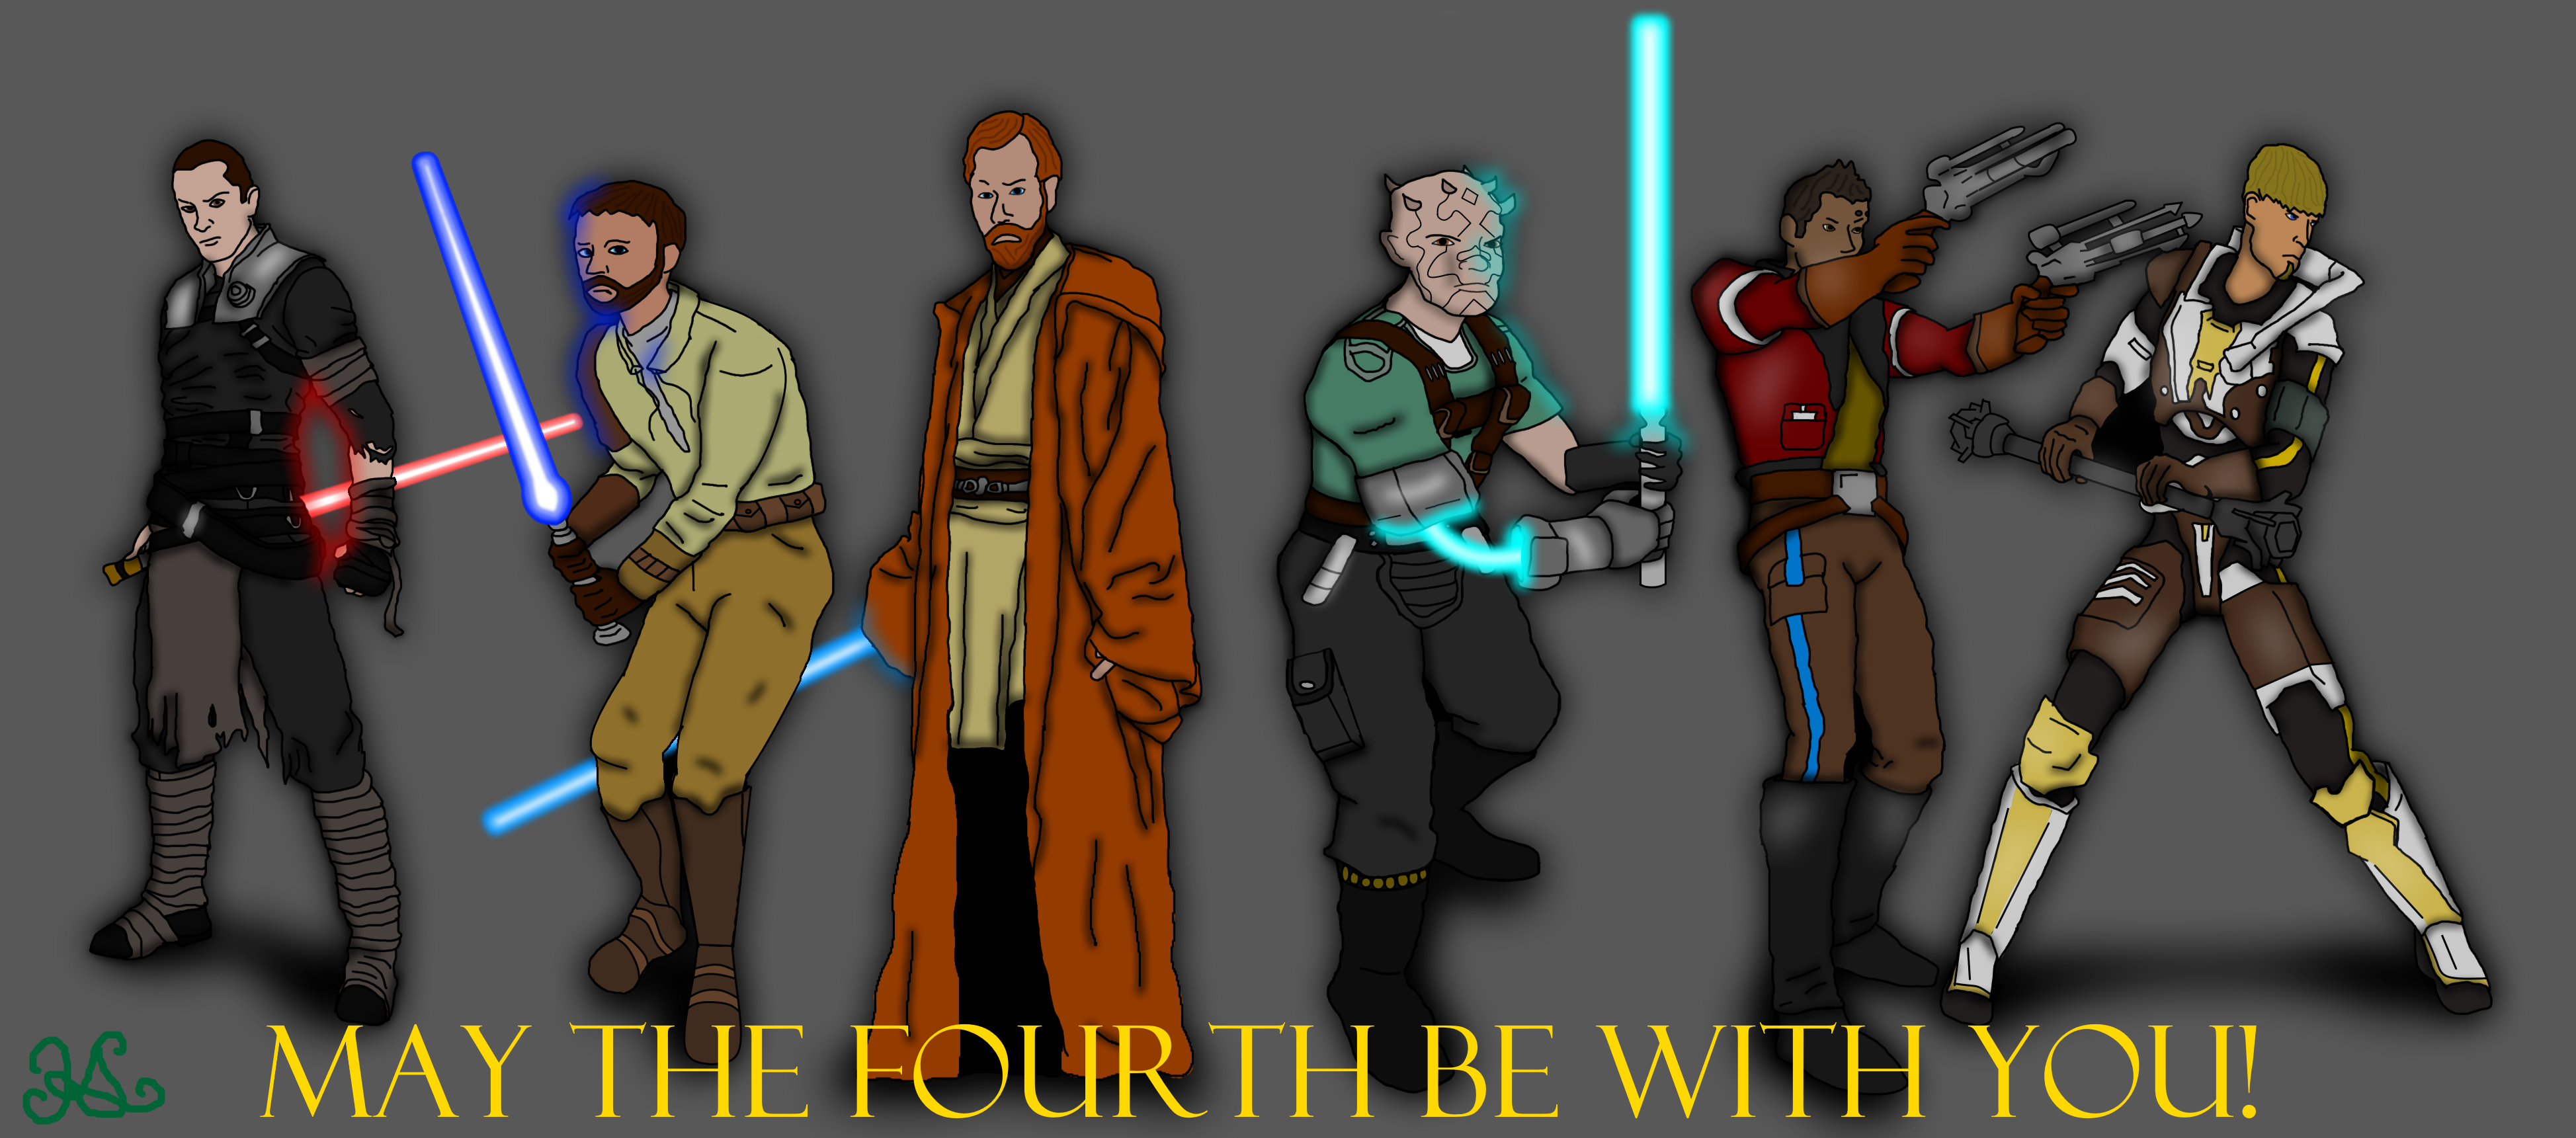 Epic Men Of Star Wars By Kalmastari On Deviantart